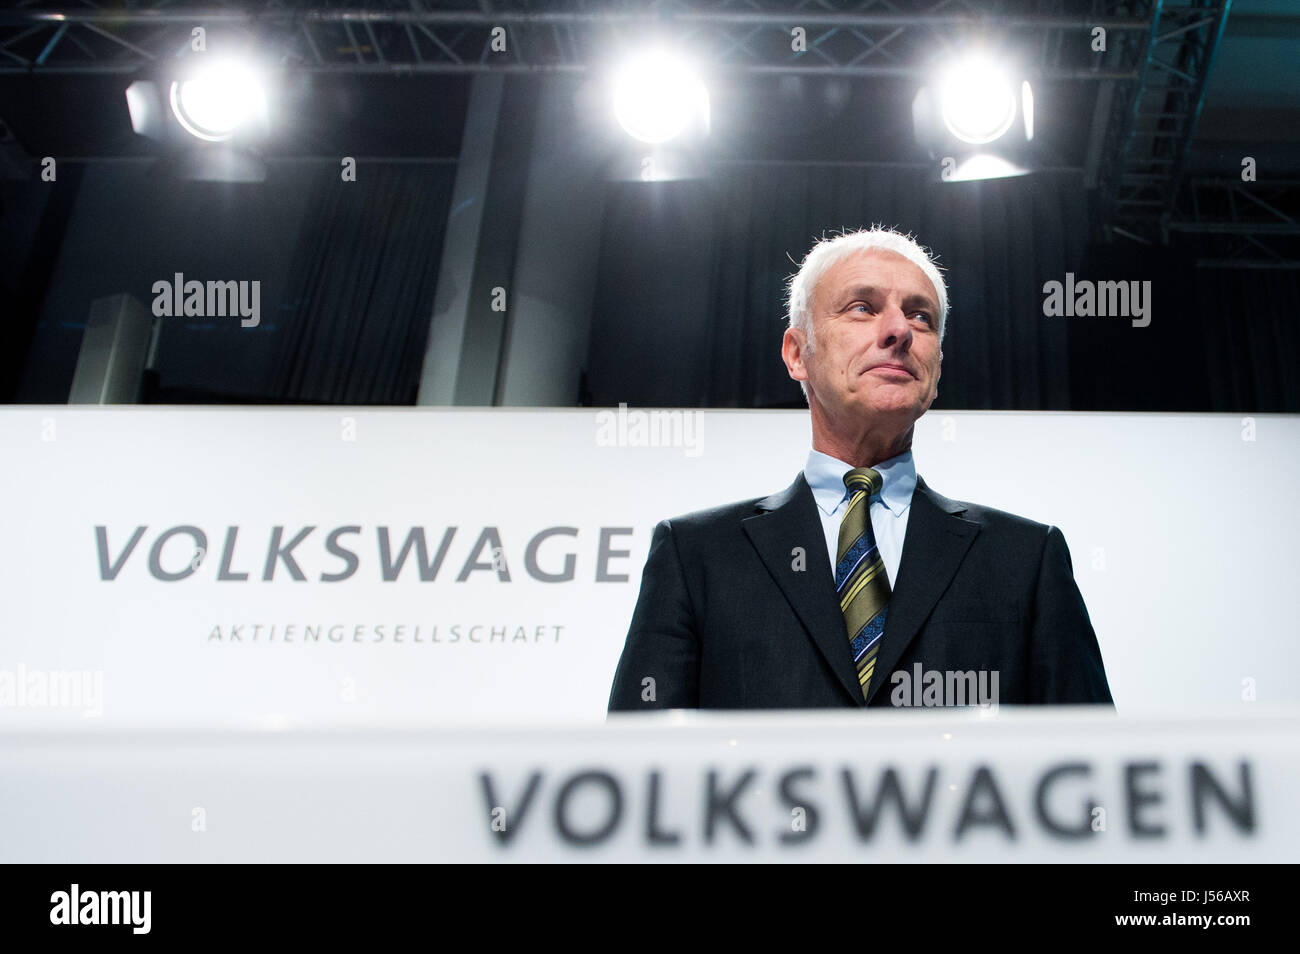 Wolfsburg, Germany. 10th Dec, 2015. ARCHIVE - Matthias Mueller, the CEO of Volkswagen AG, at a press conference - Stock Image